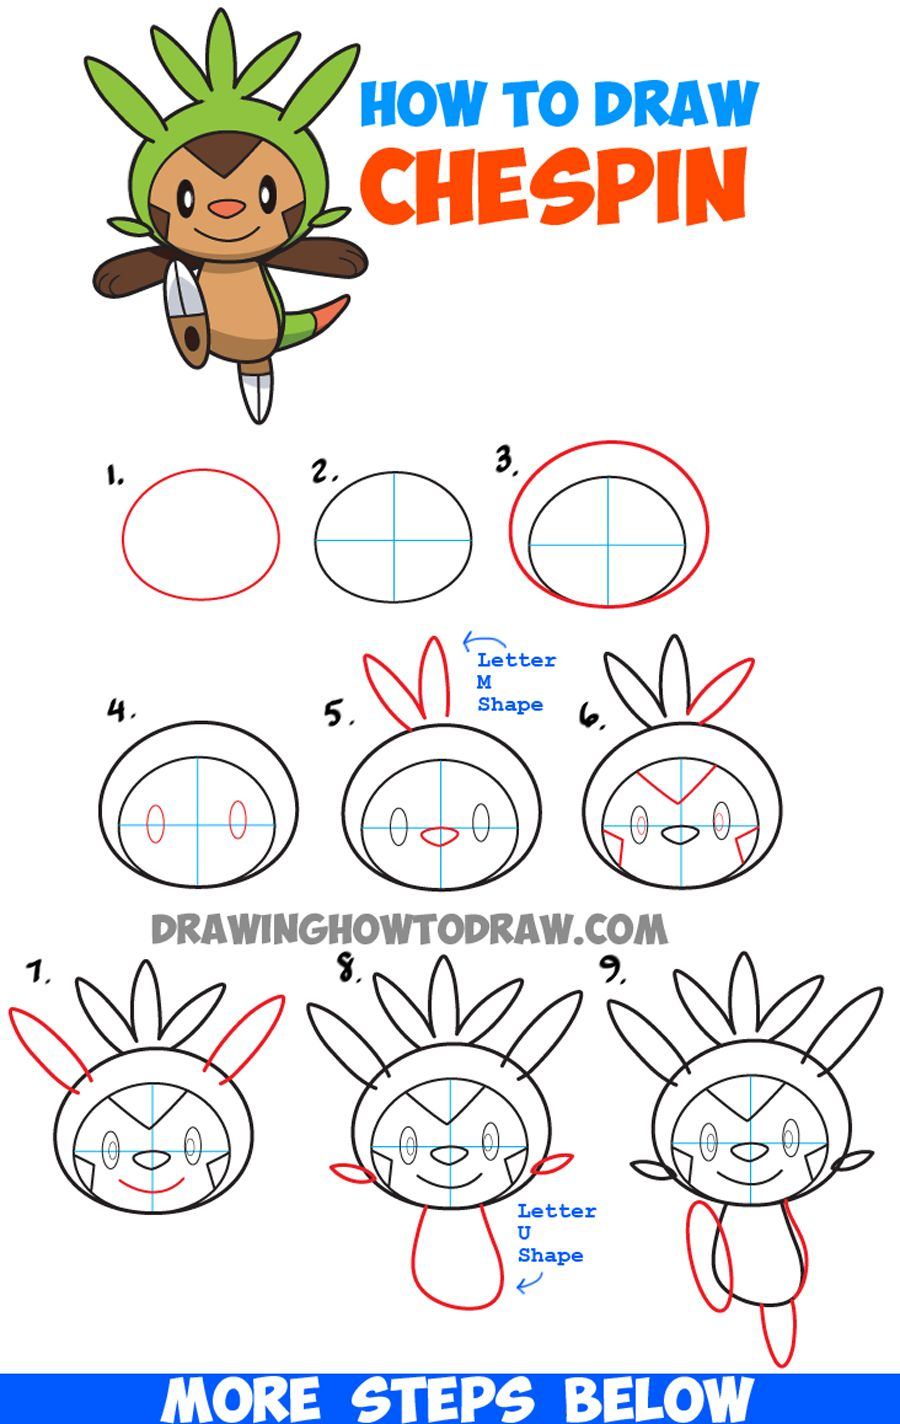 How to draw chespin from pokemon easy step by step drawing for How to draw things step by step